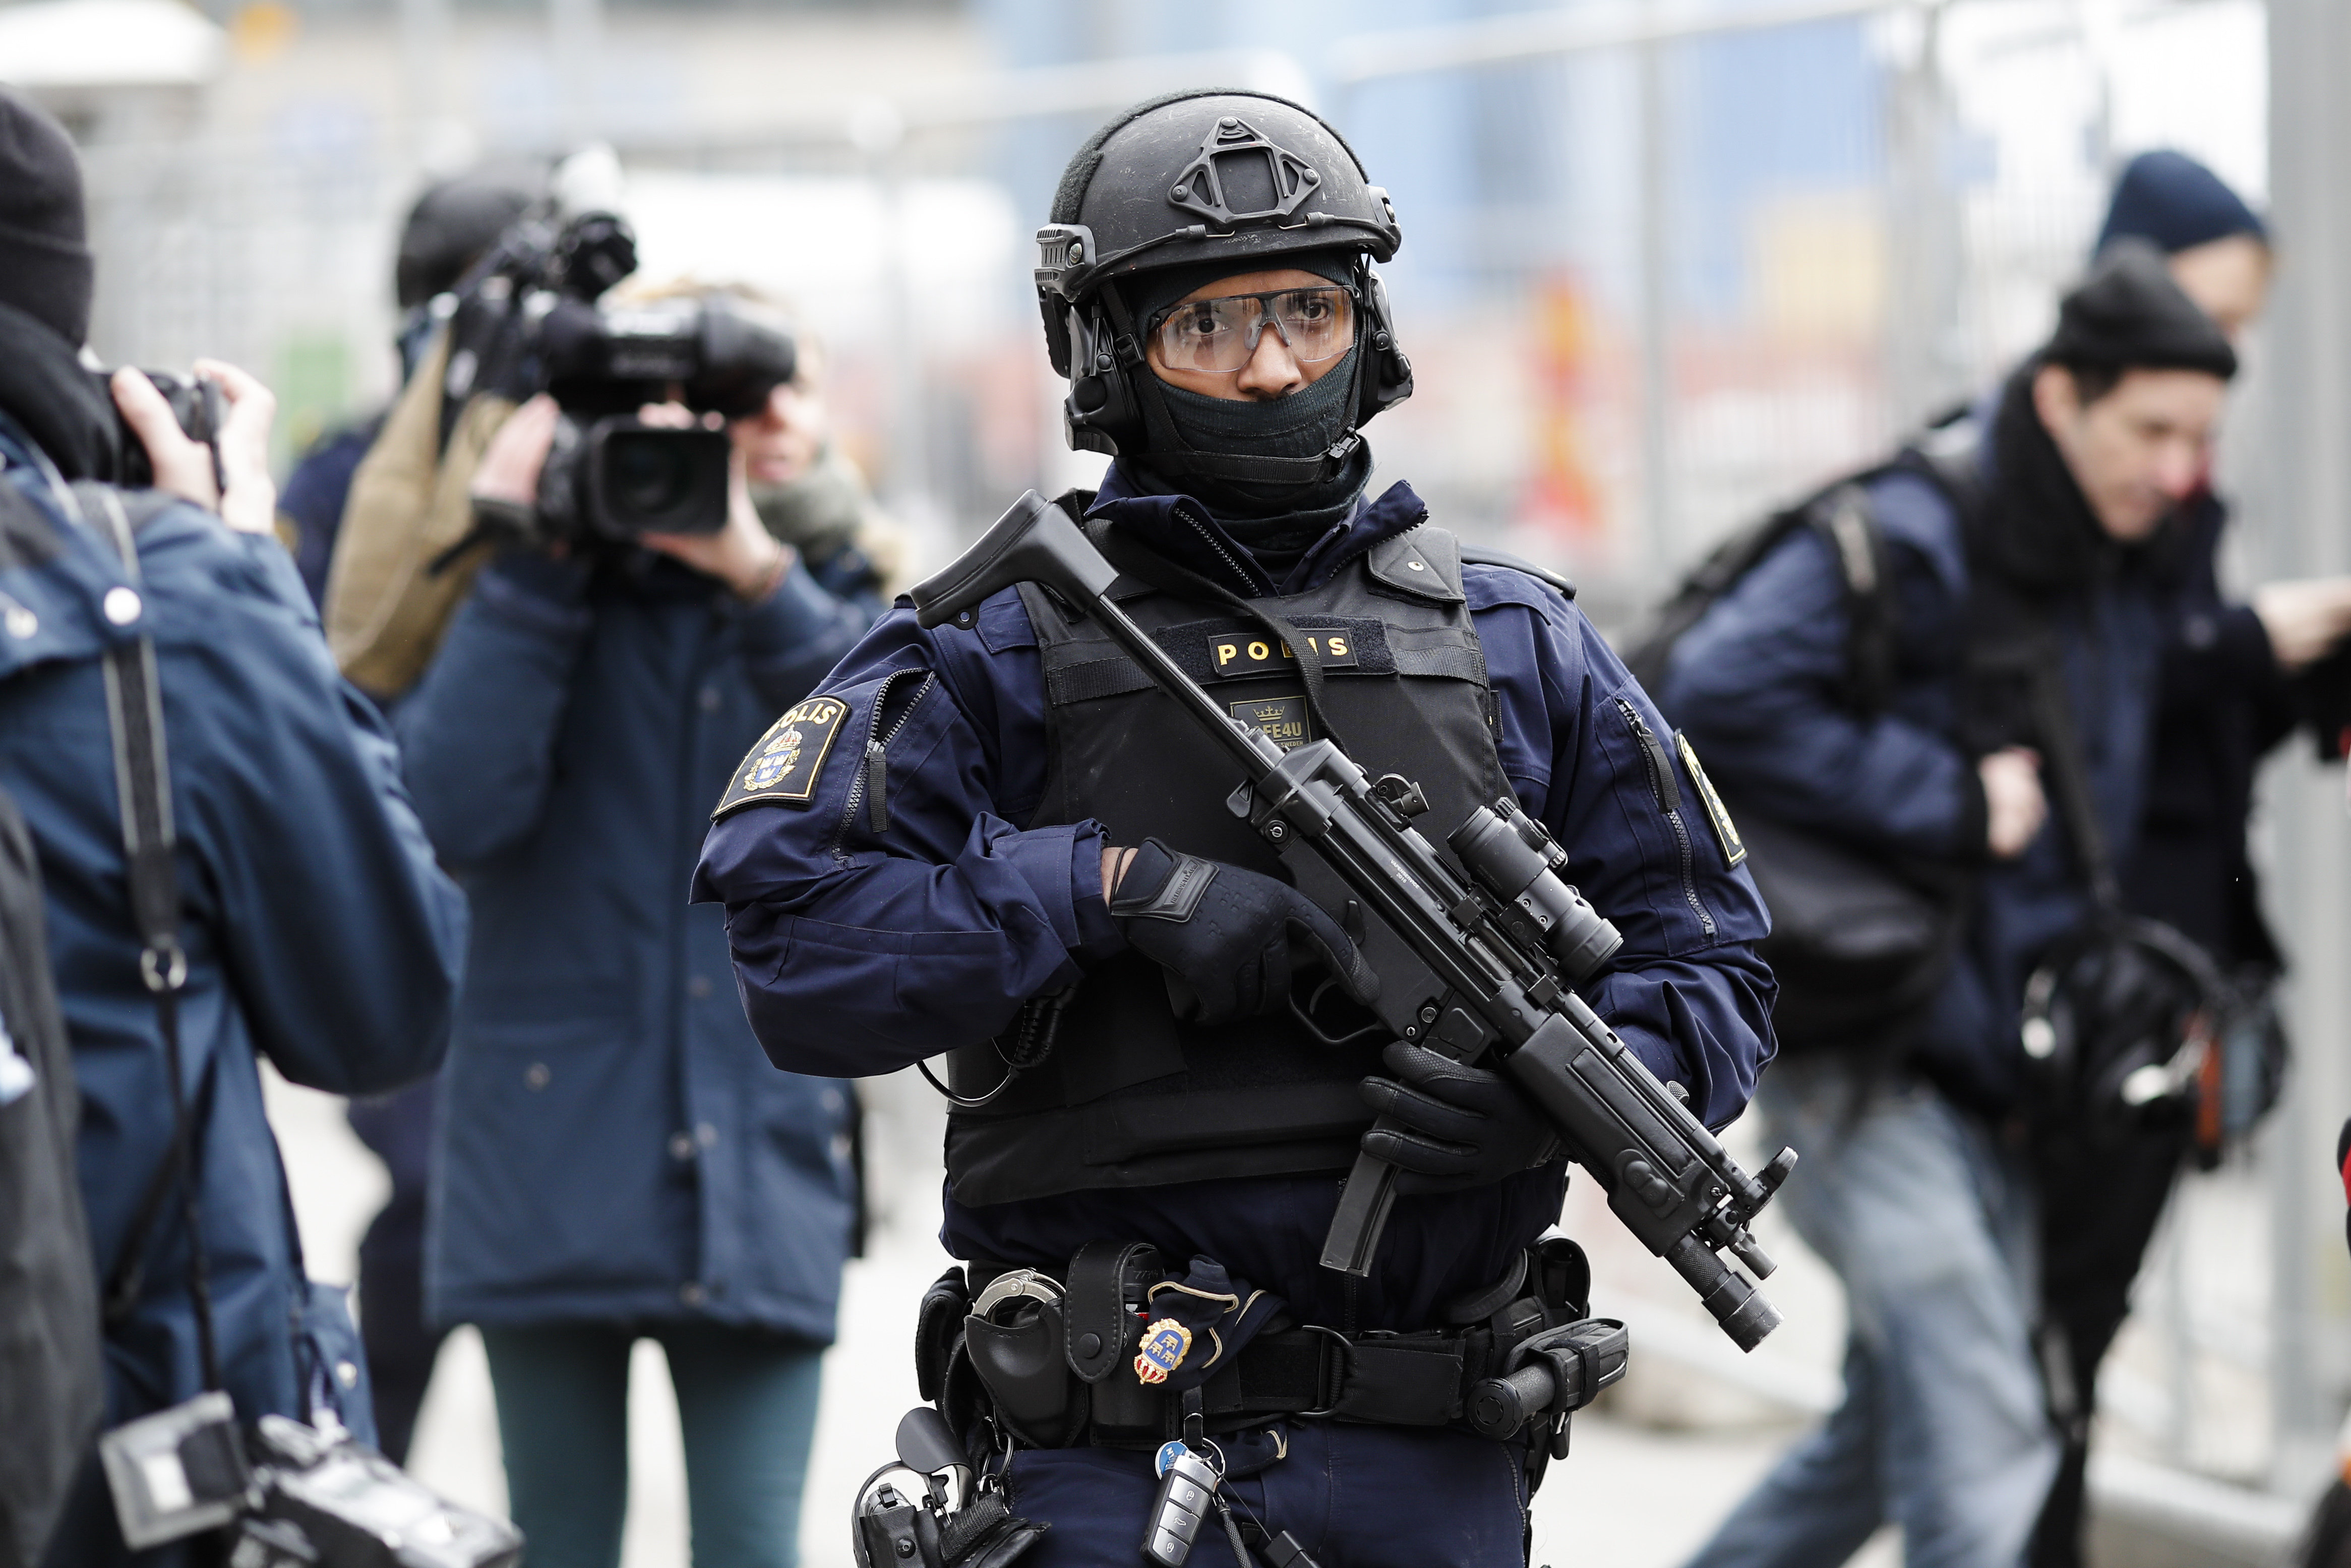 A special force police officer patrols near the department store Ahlens following a suspected terror attack on the Drottninggatan street in central Stockholm, Sweden, Saturday, April 8, 2017